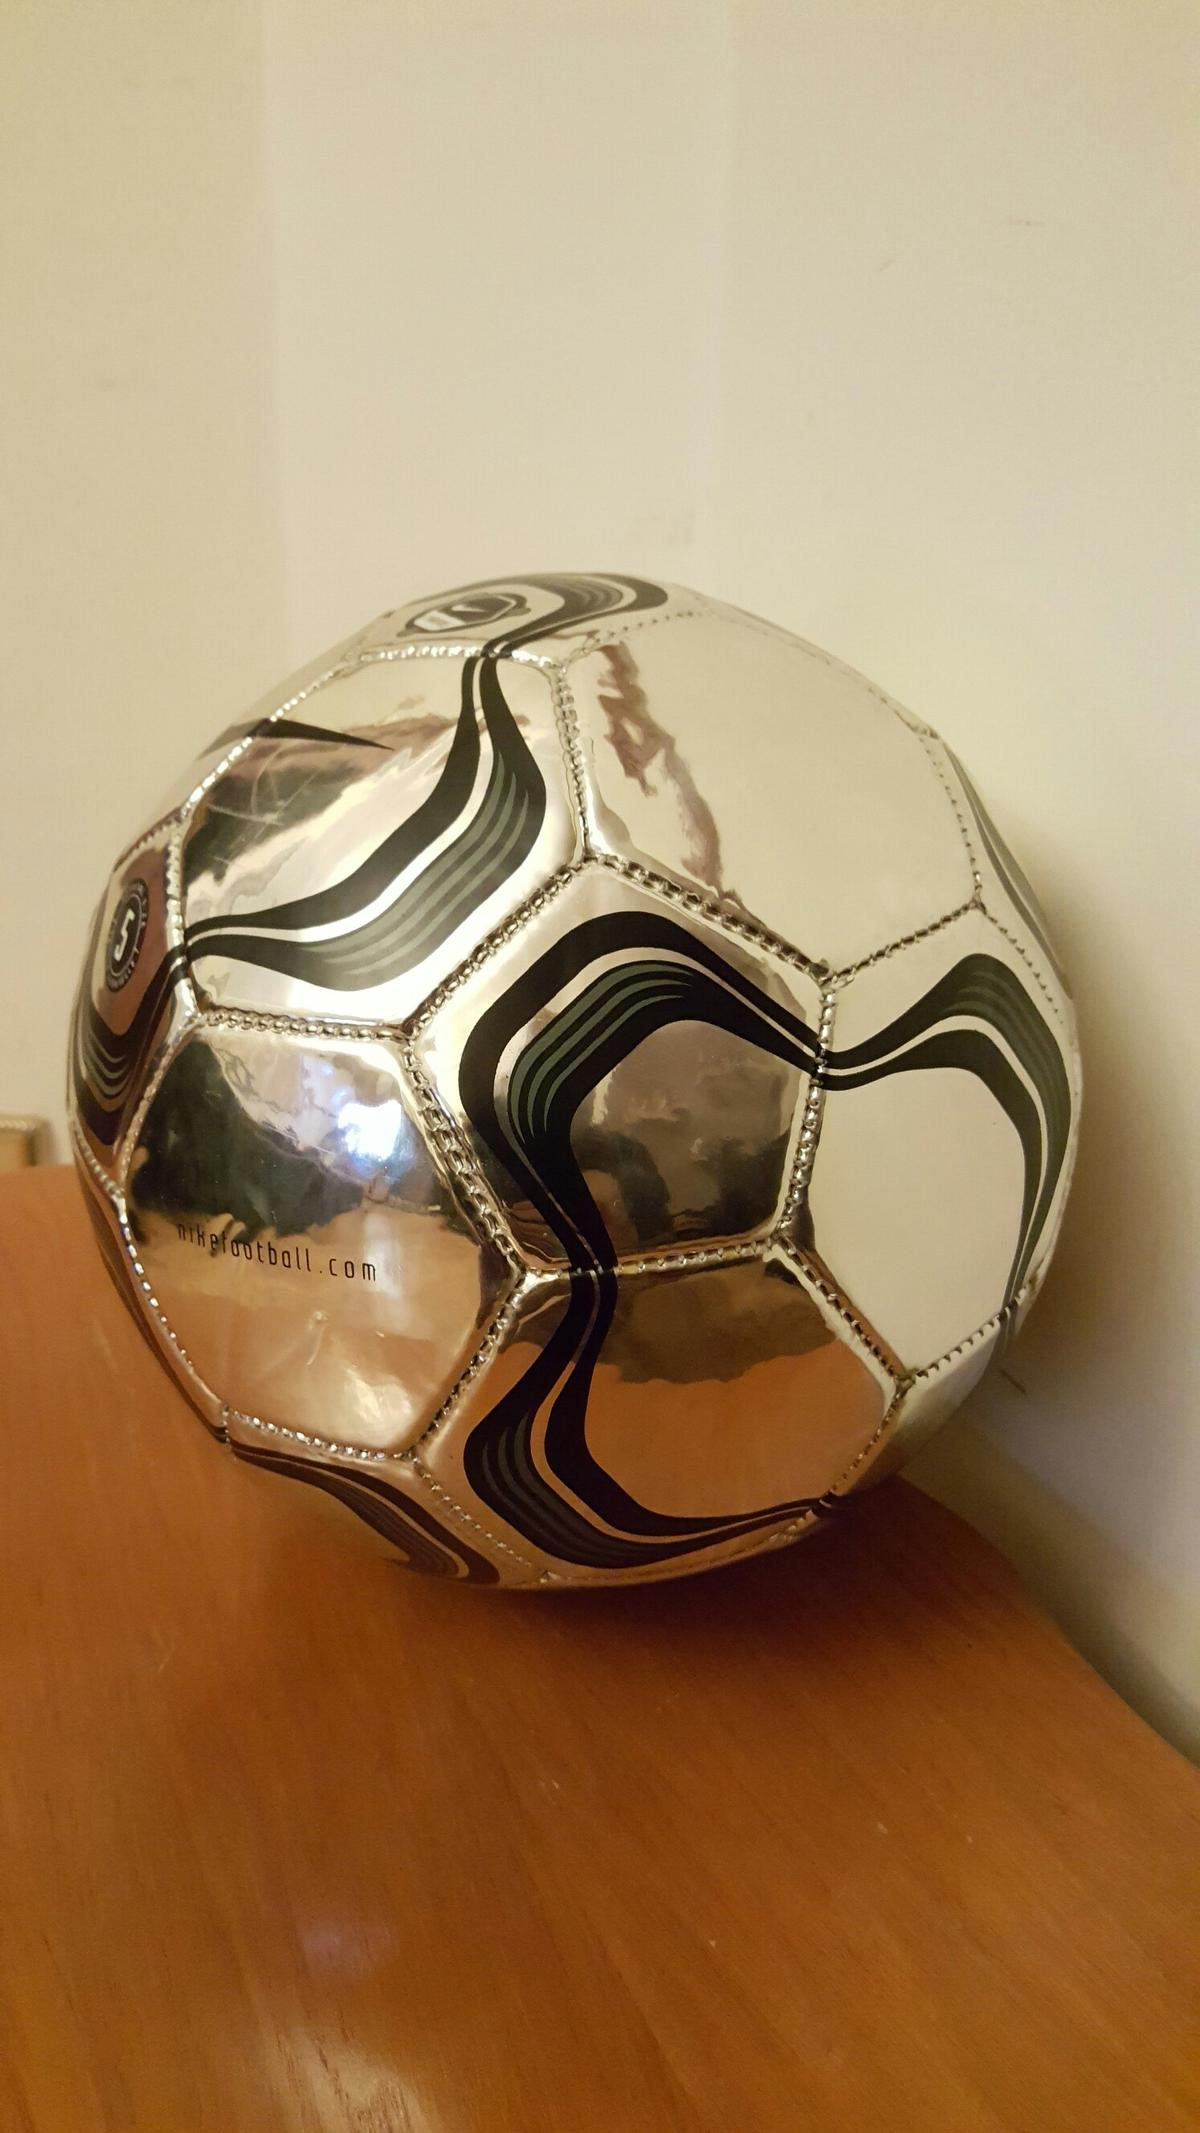 a0d32f07e623 Nike scorpion chrome football in London for £50.00 for sale - Shpock